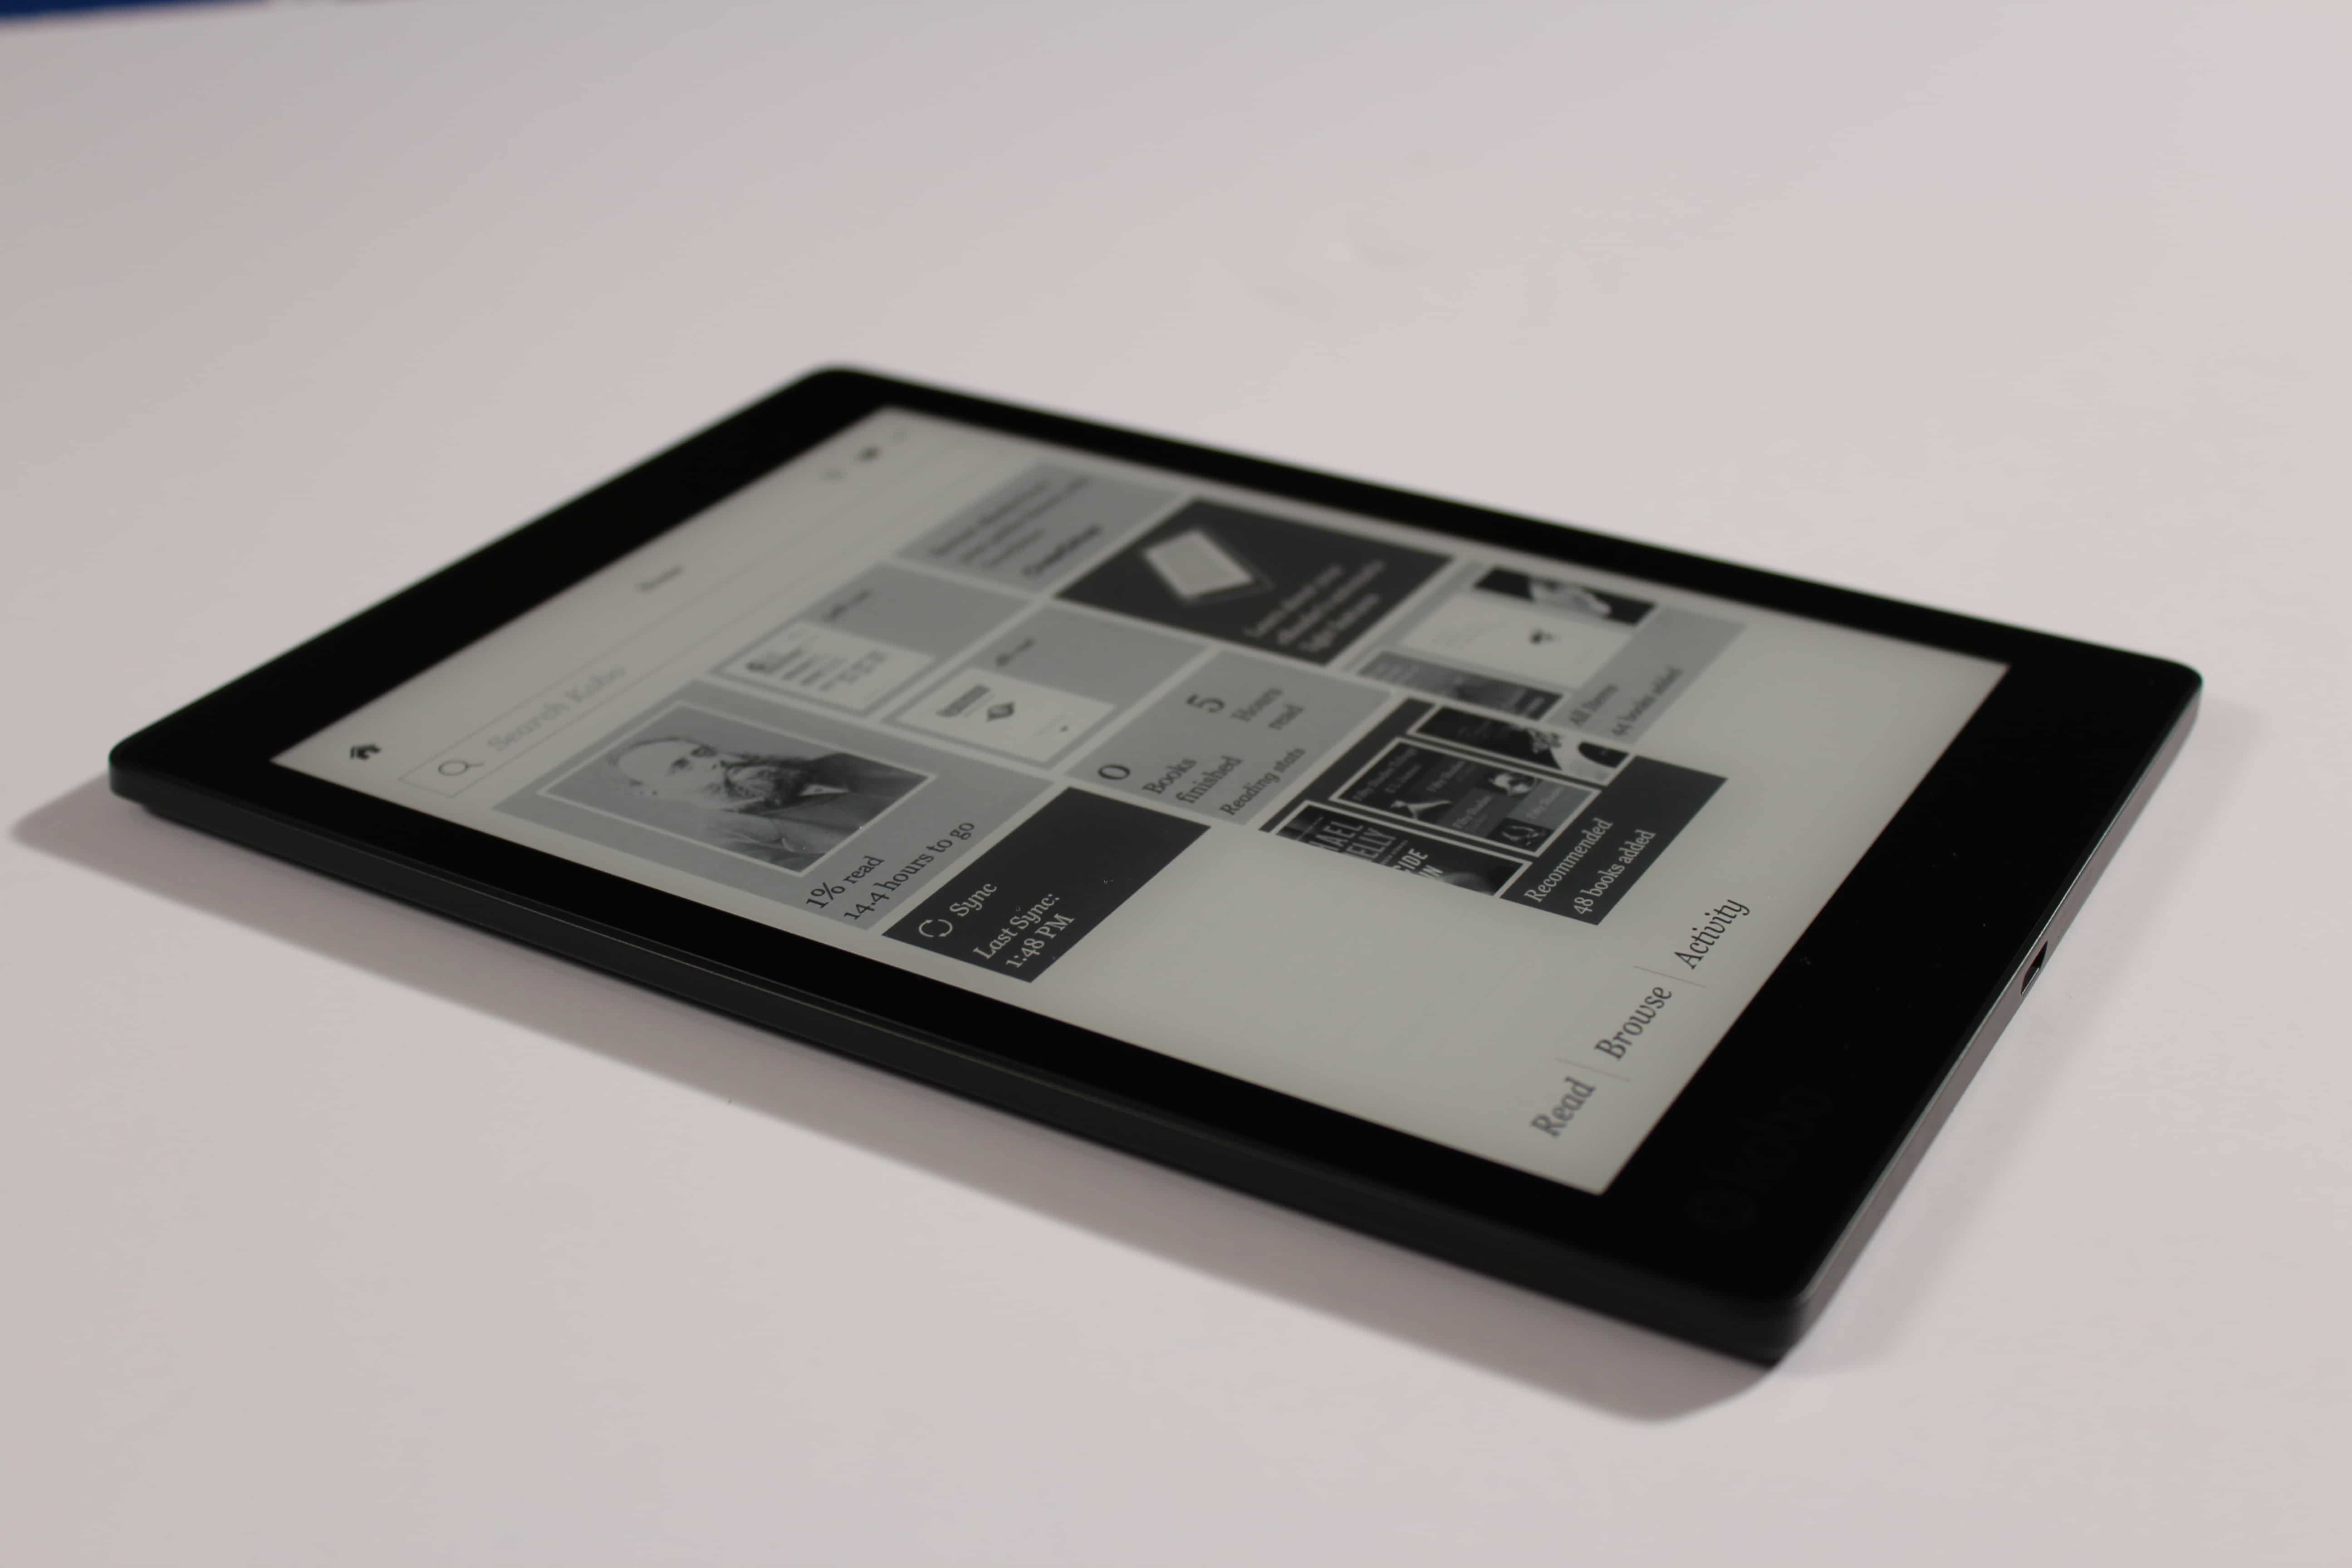 The Kobo Aura One Is The Culmination Of Everything Kobo Has Done In The Ereader  Arena Since 2010 They Expanded Upon All Of Their Criticalmercial